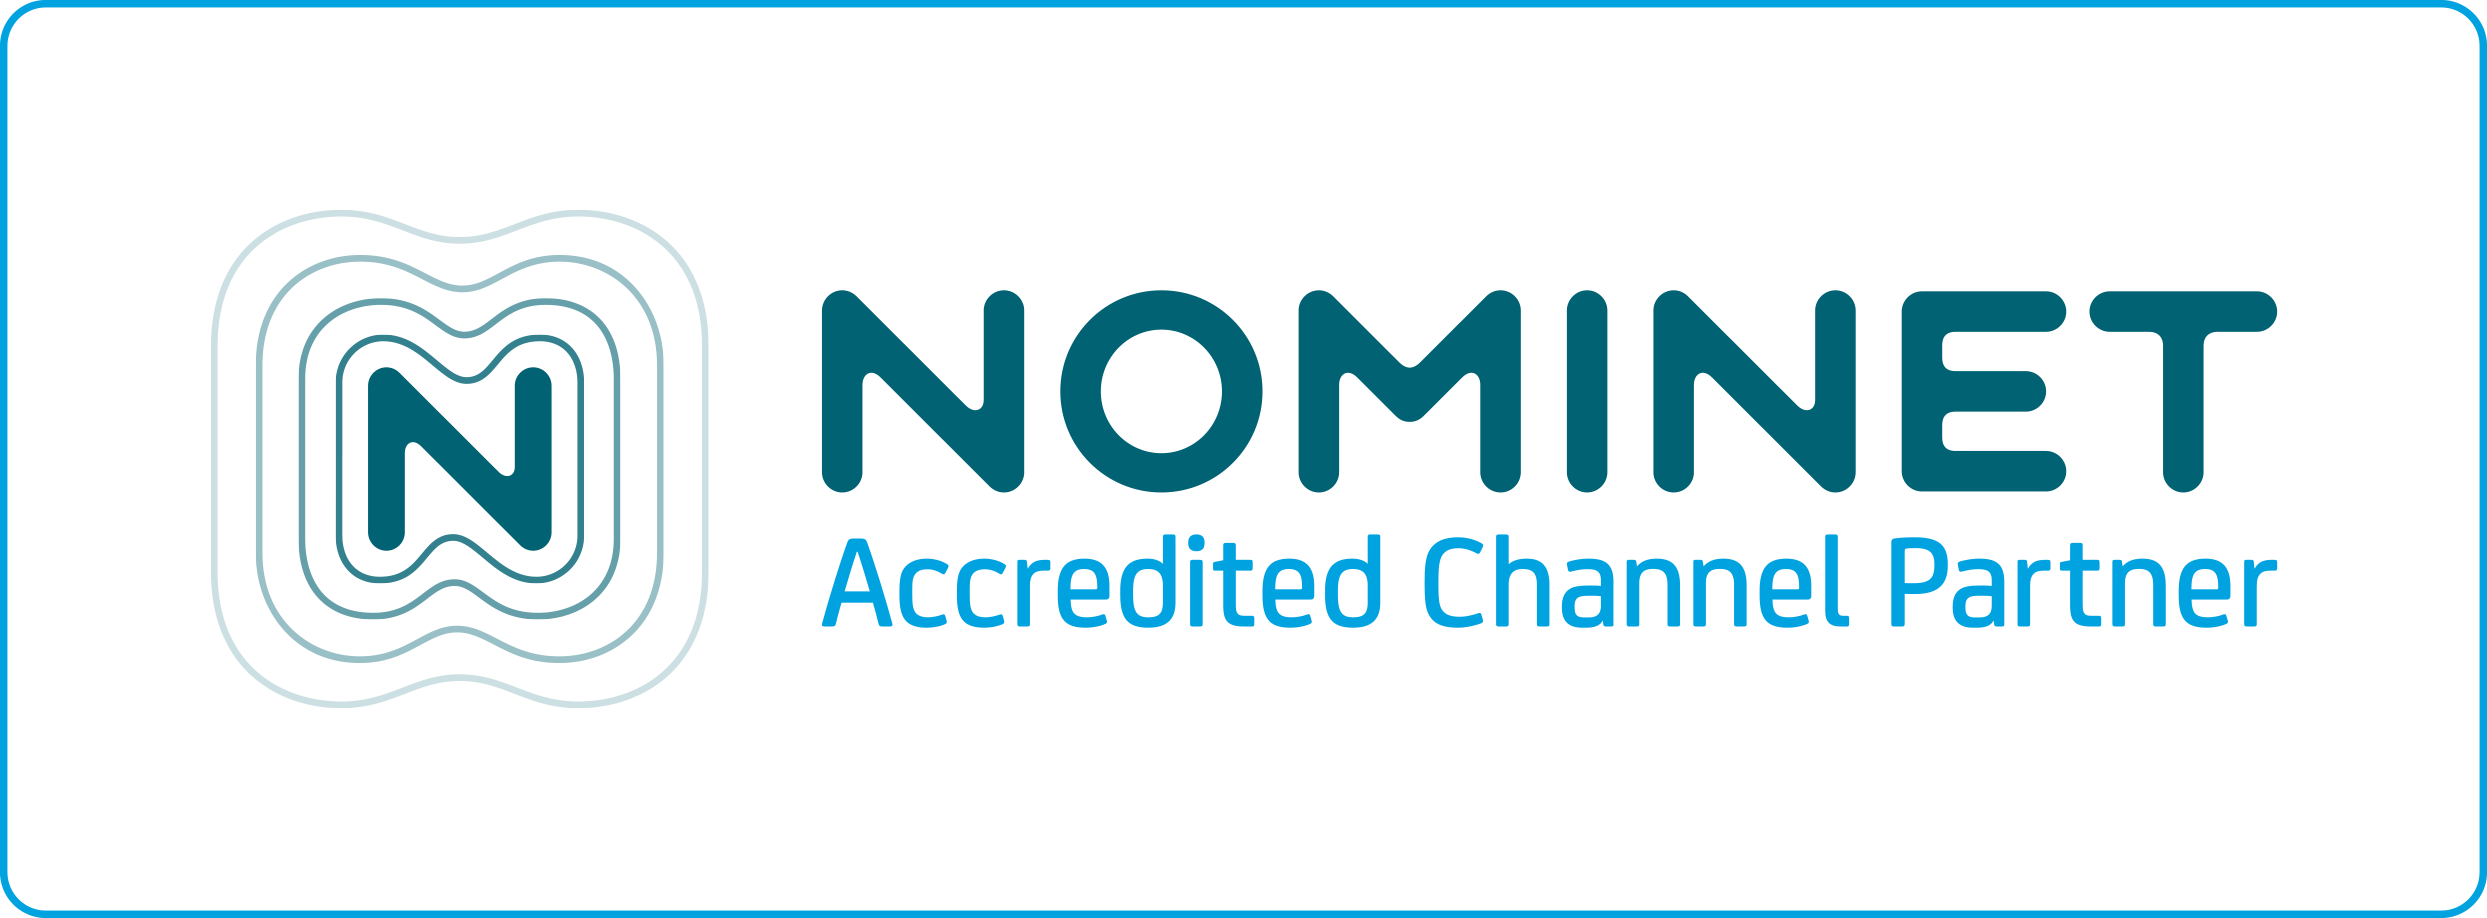 Nominet Accredited Channel Partner